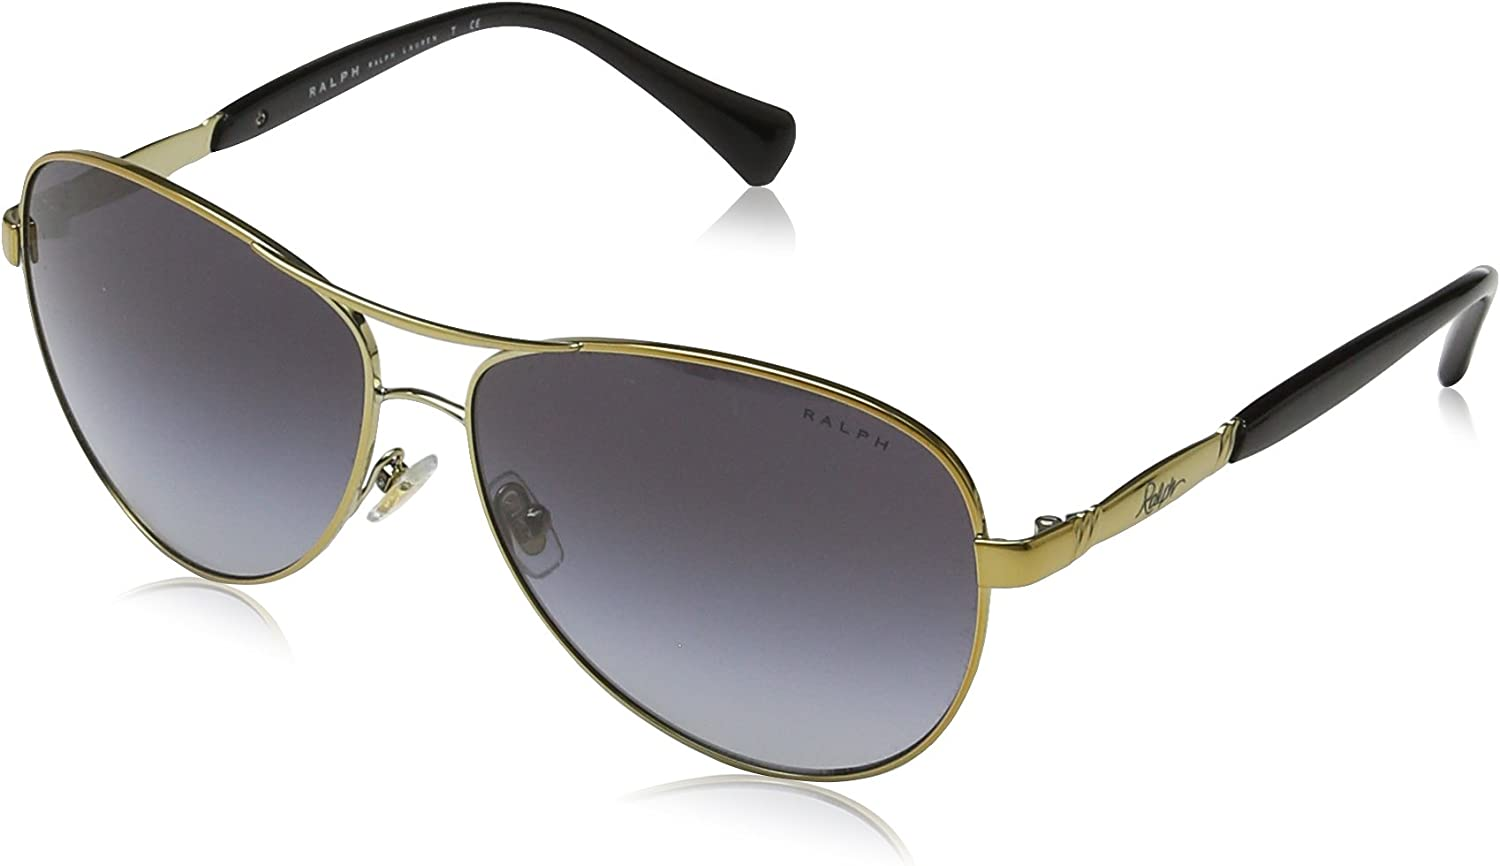 Ralph RA 4117 gold BLACK GREY SHADED women Sunglasses